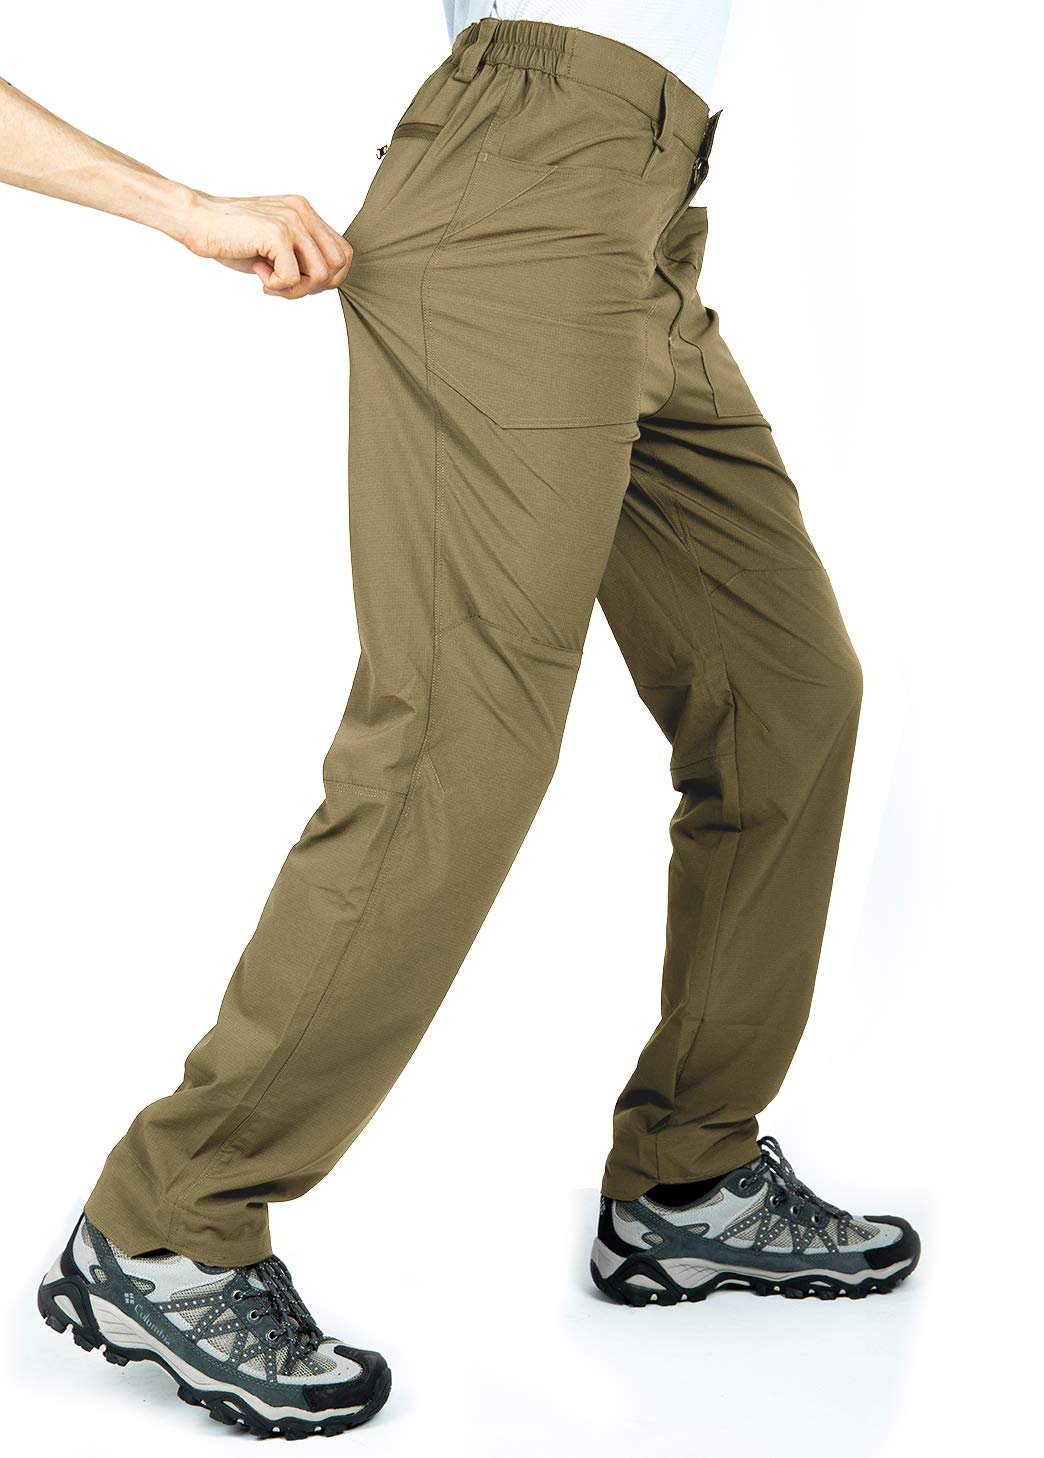 Cycorld Men's-Hiking-Pants, Quick-Dry-Lightweight-Breathable Outdoor-Cargo-Pants for Camping Climbing Fishing with Pockets